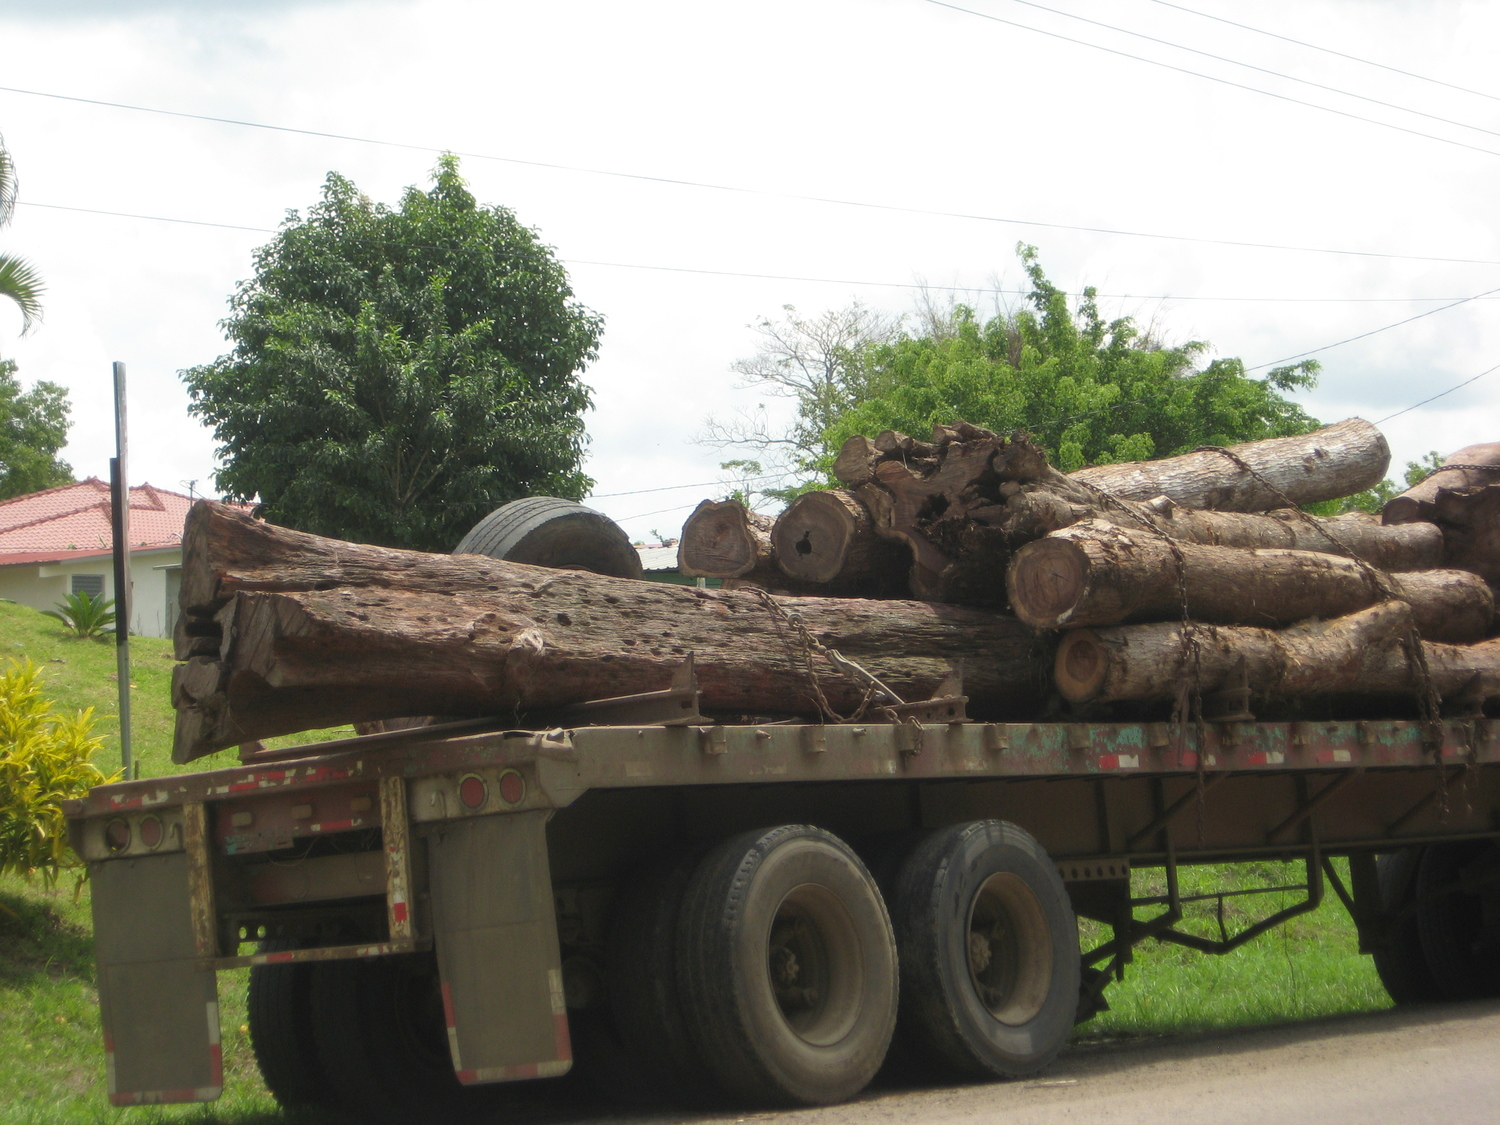 Choosing a Timber Investment | Planting Empowerment